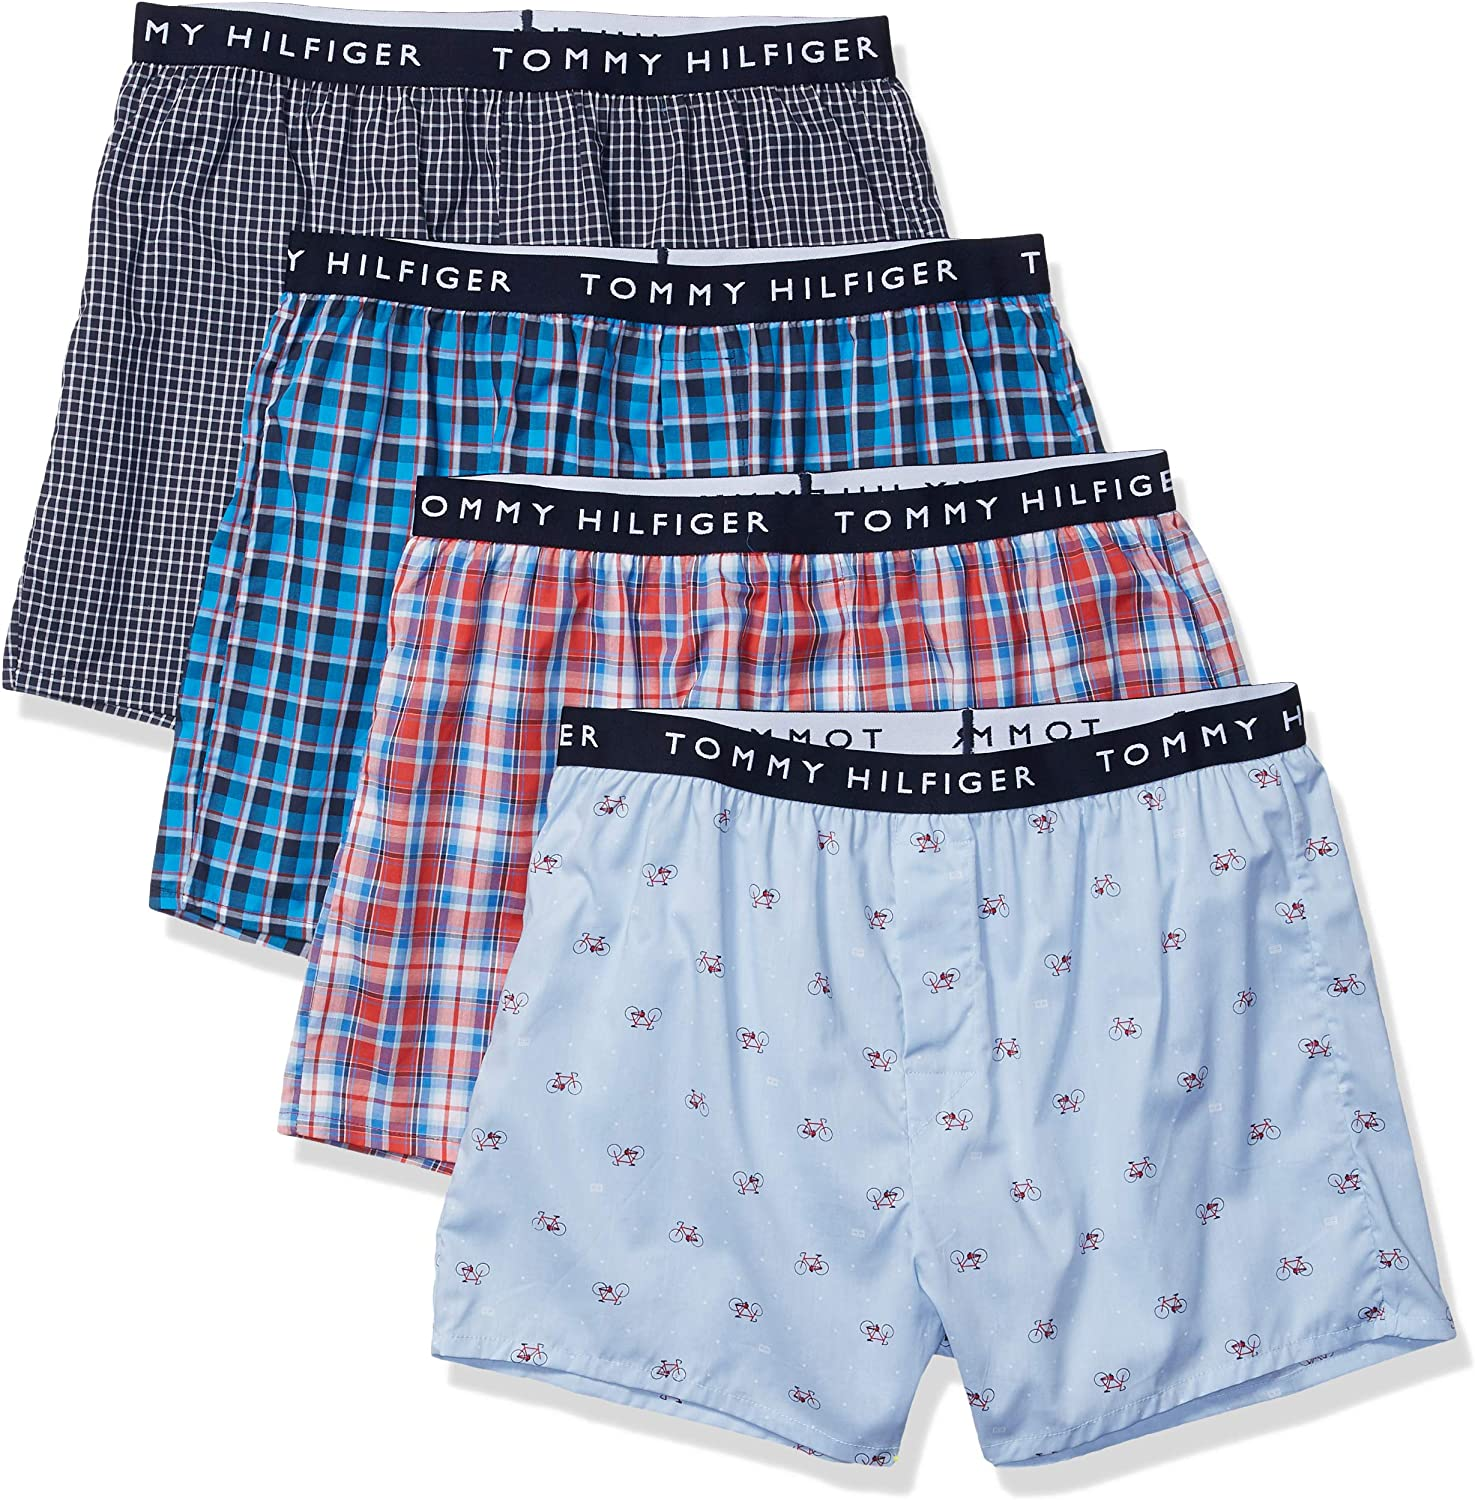 Tommy Hilfiger Mens Underwear Cotton 4 Pack Woven Boxers